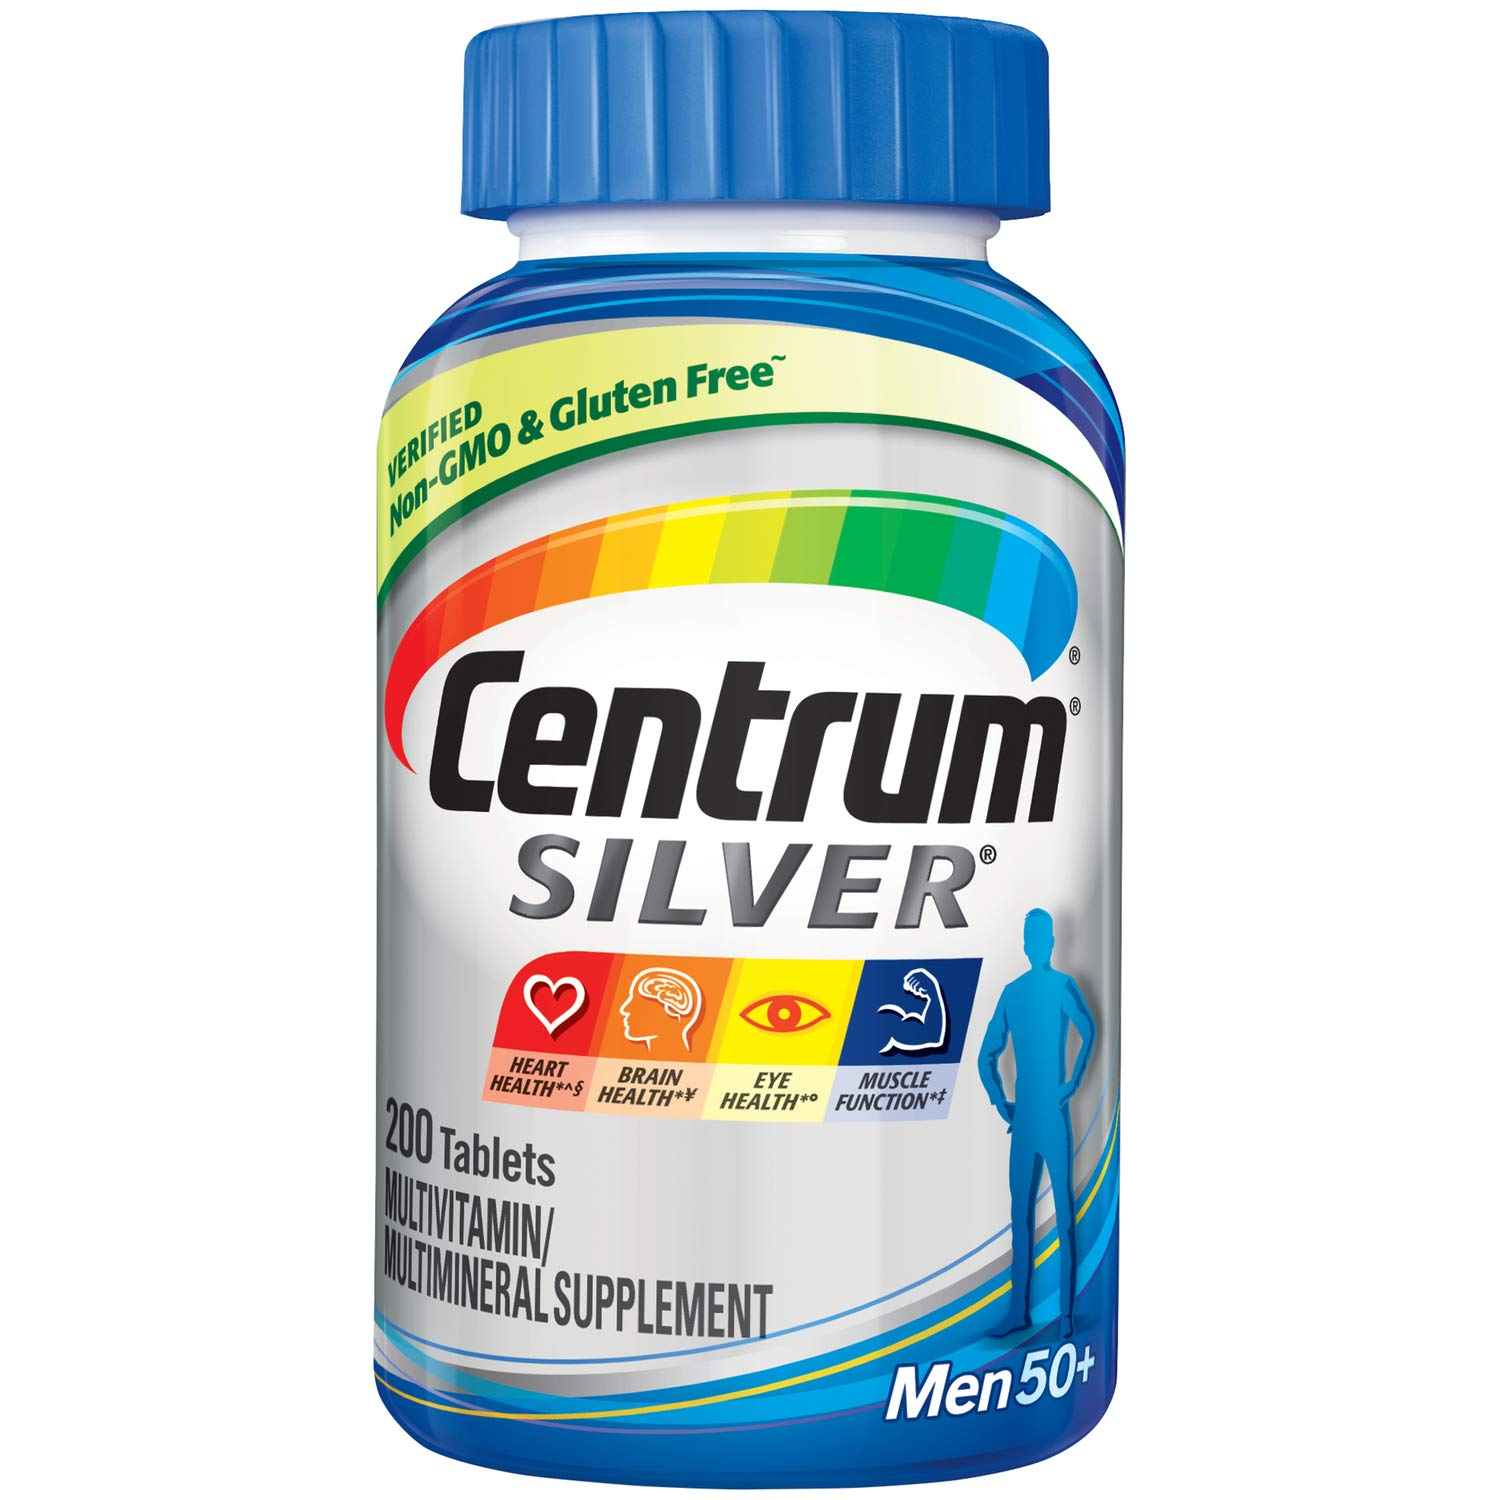 Centrum Silver Men 50 Plus Multivitamin